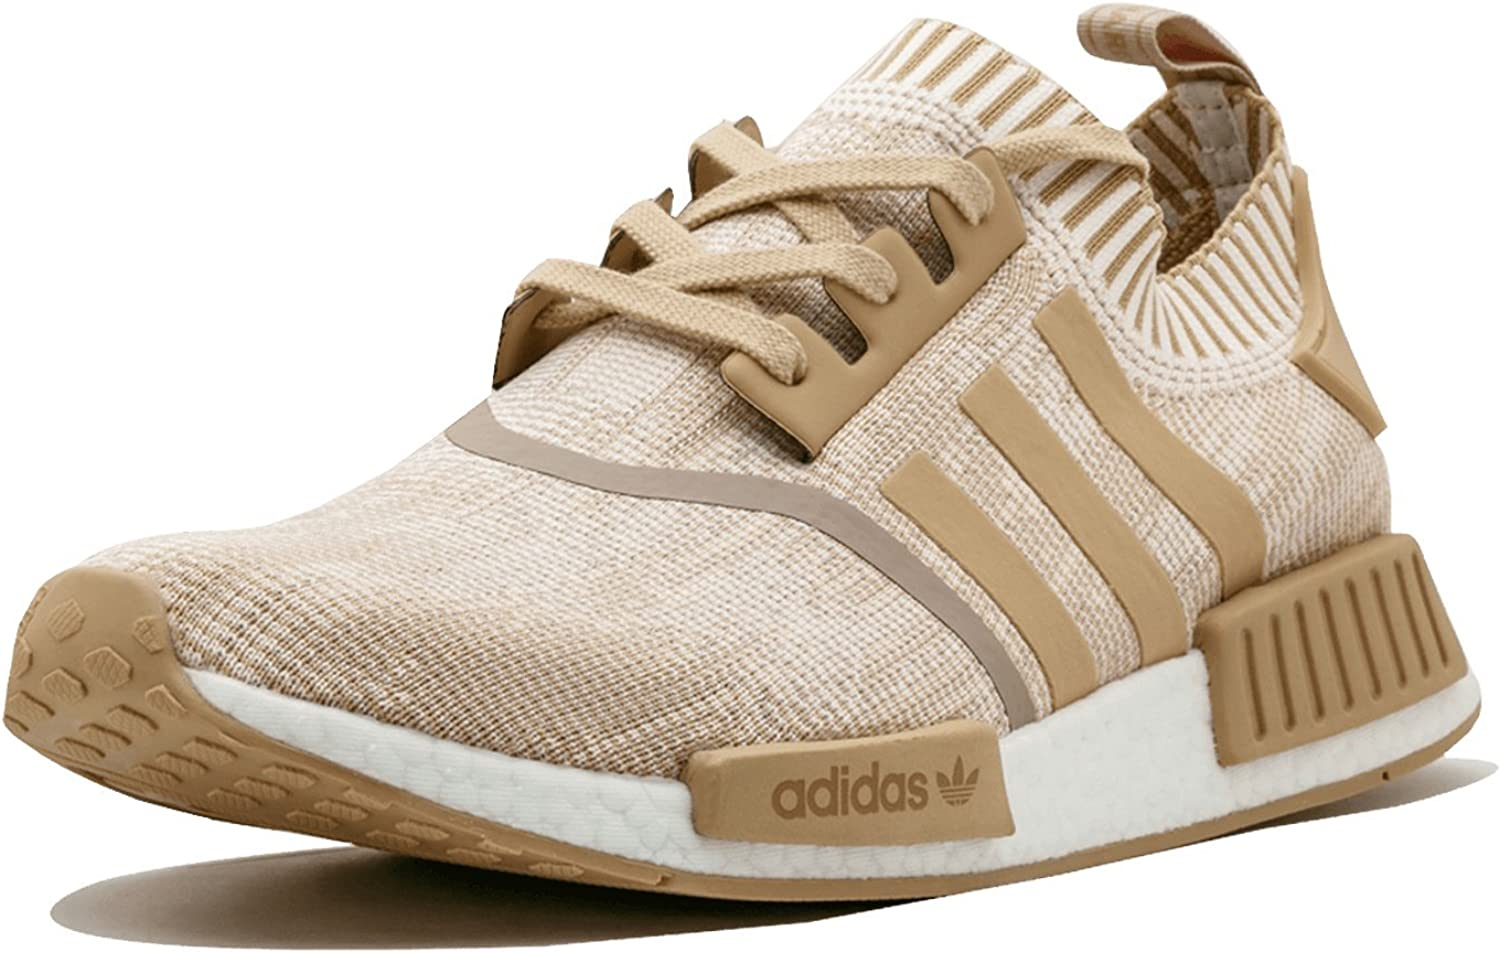 adidas NMD_R1 PK - BY1912 | Road Running